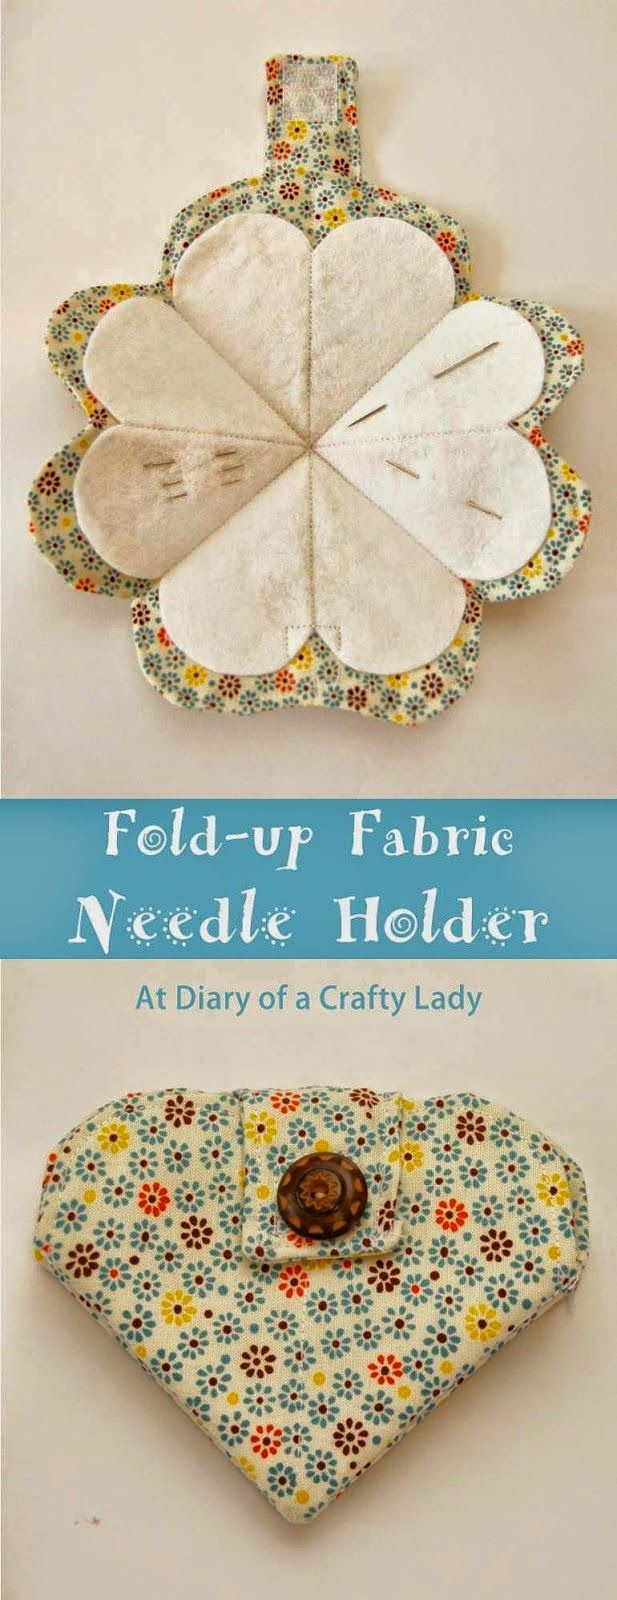 Fold-up Fabric Needle Holder - tutorial                              …